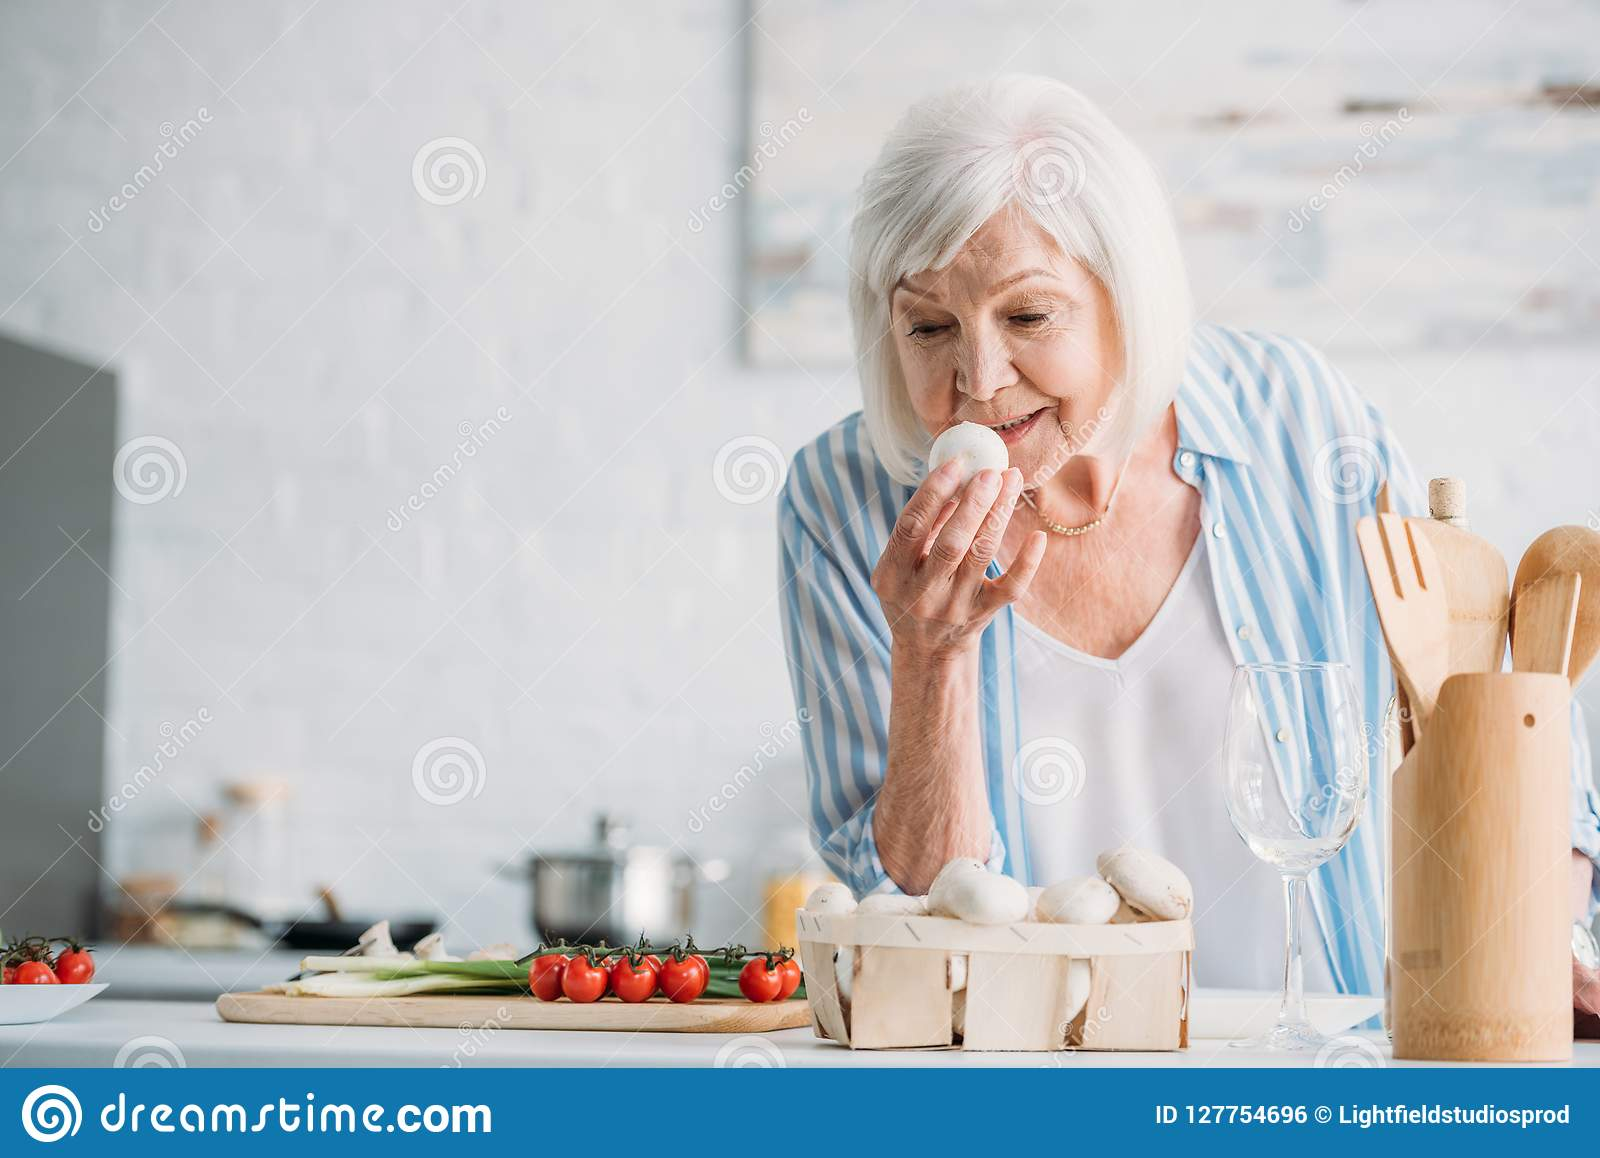 portrait of grey hair lady checking mushrooms while cooking dinner at counter